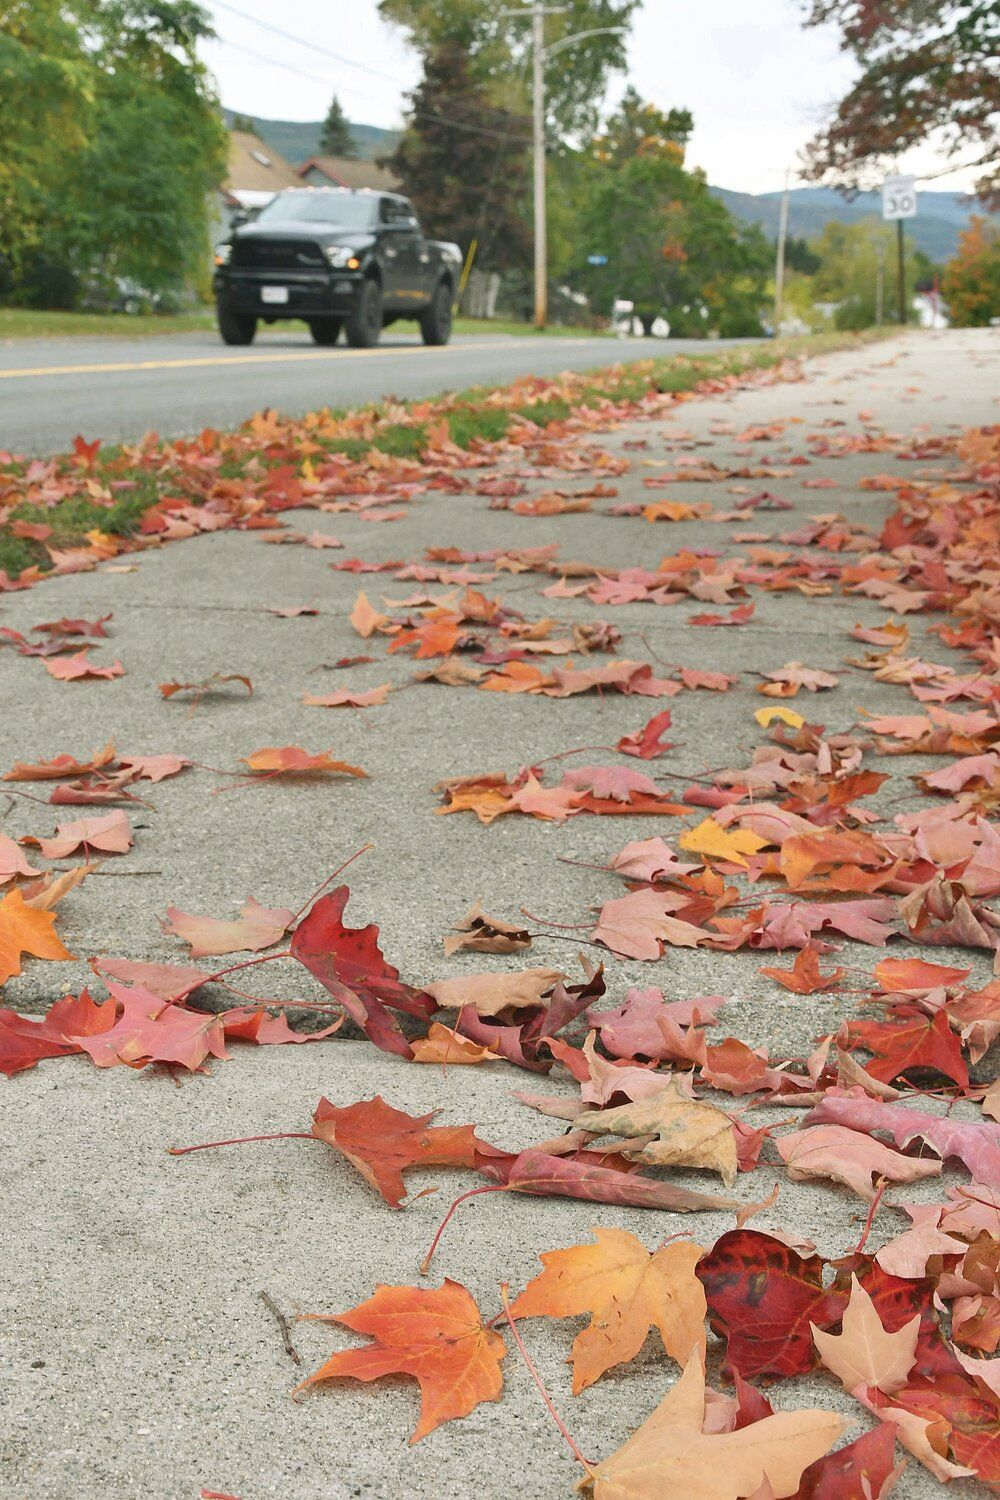 The Outlook: After slight catch-up on rain, seasonable weather ahead